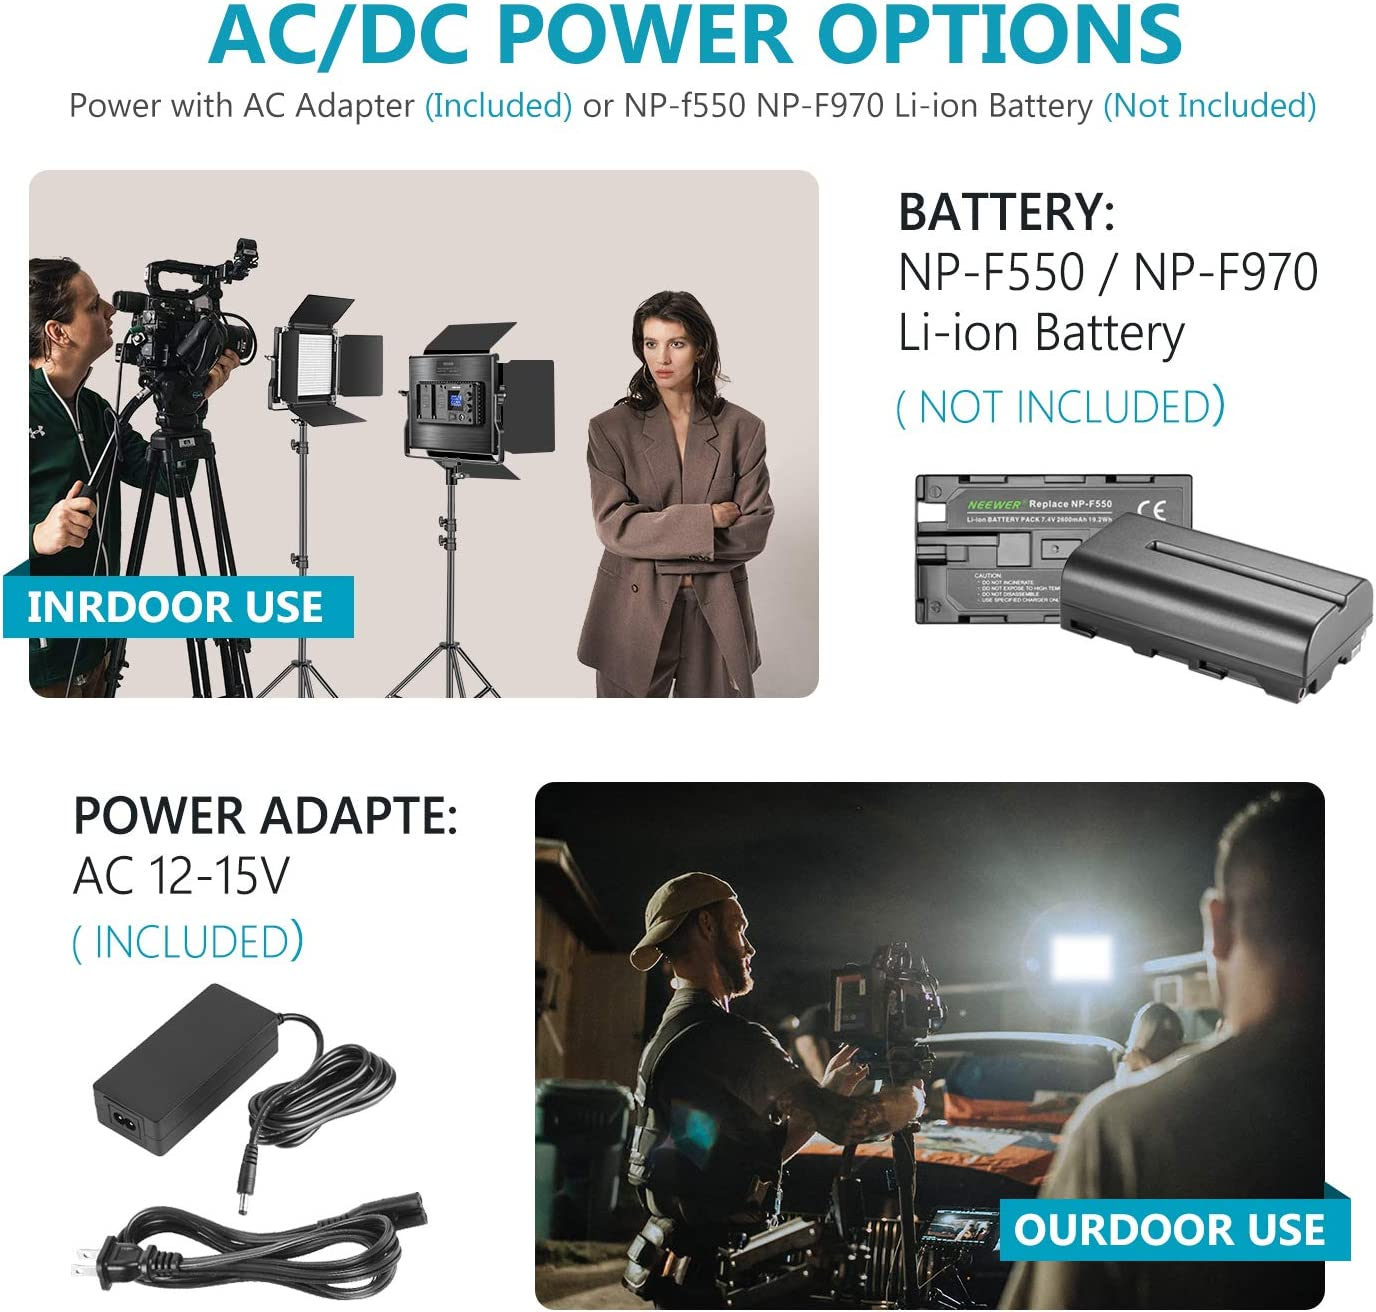 Dimmable Bi-Color LED Panel with 2.4G Wireless Remote LCD Screen and Light Stand for Portrait Product Photography Neewer 2 Packs Advanced 2.4G 660 LED Video Light Photography Lighting Kit with Bag